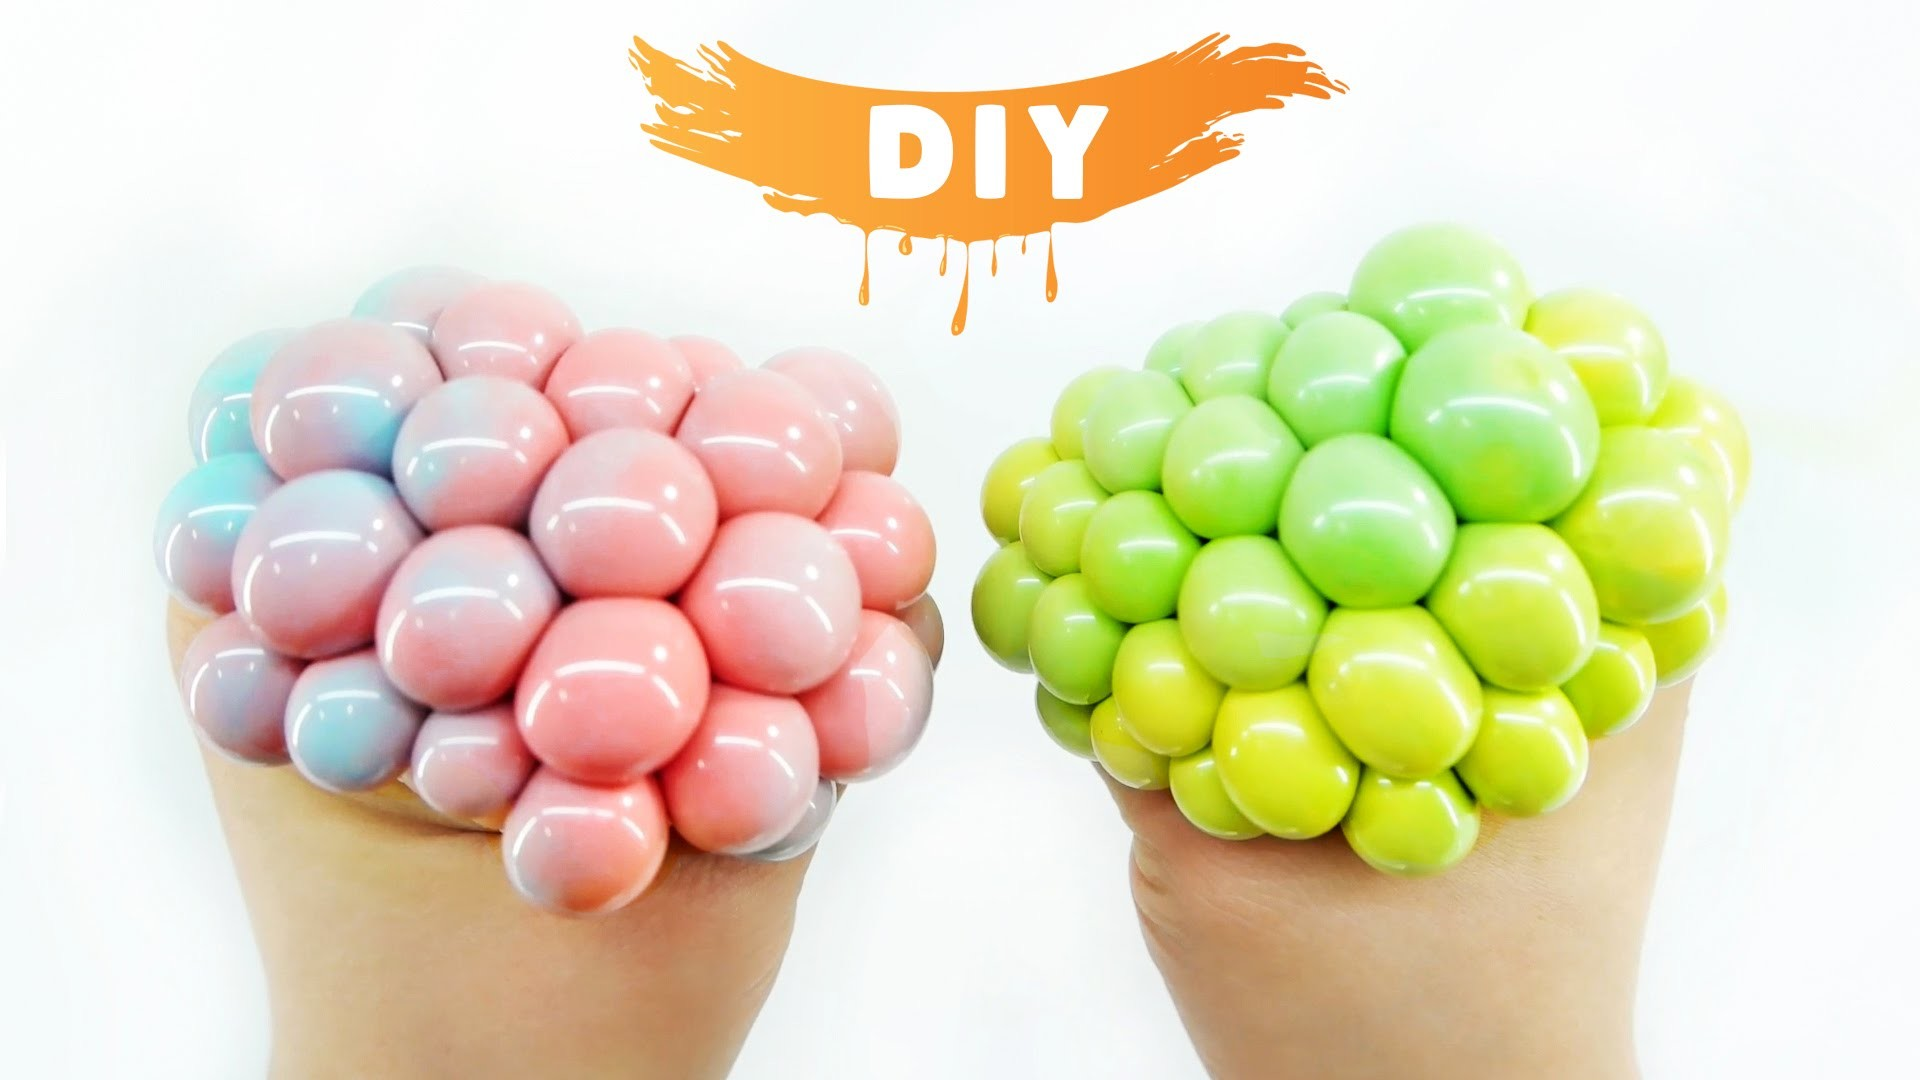 How To Make Squishy Mesh Slime Ball Diy Two Tone Stress Ball